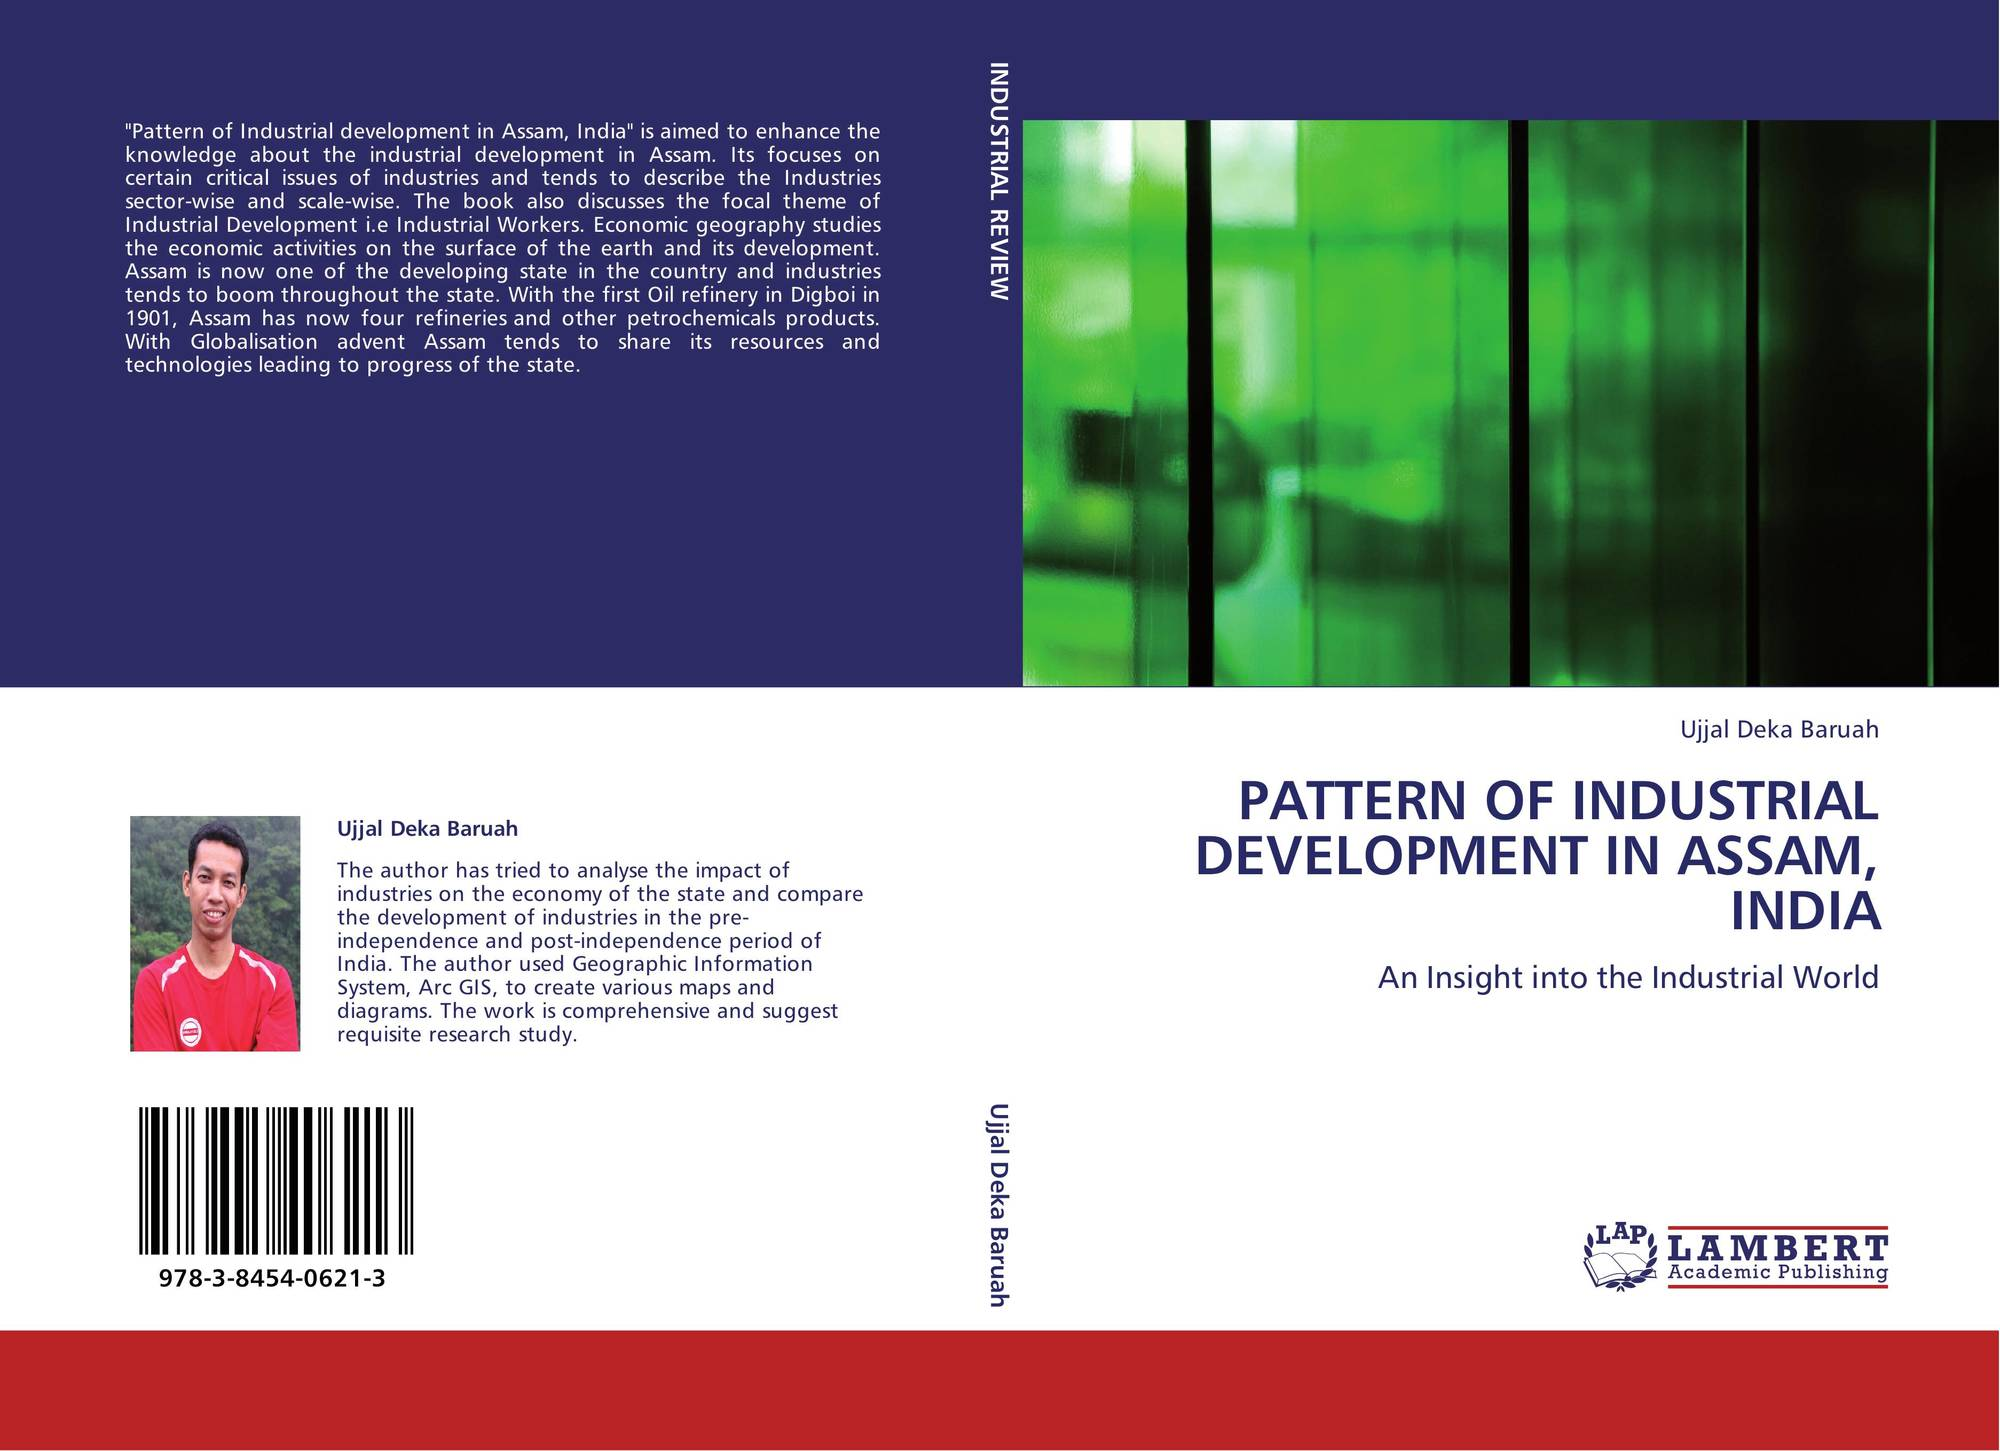 pattern of industrialisation in india Industrial development in india dr laxmi narayan assistant professor (economics) growth and pattern of industrialization in india vriddhee goel.